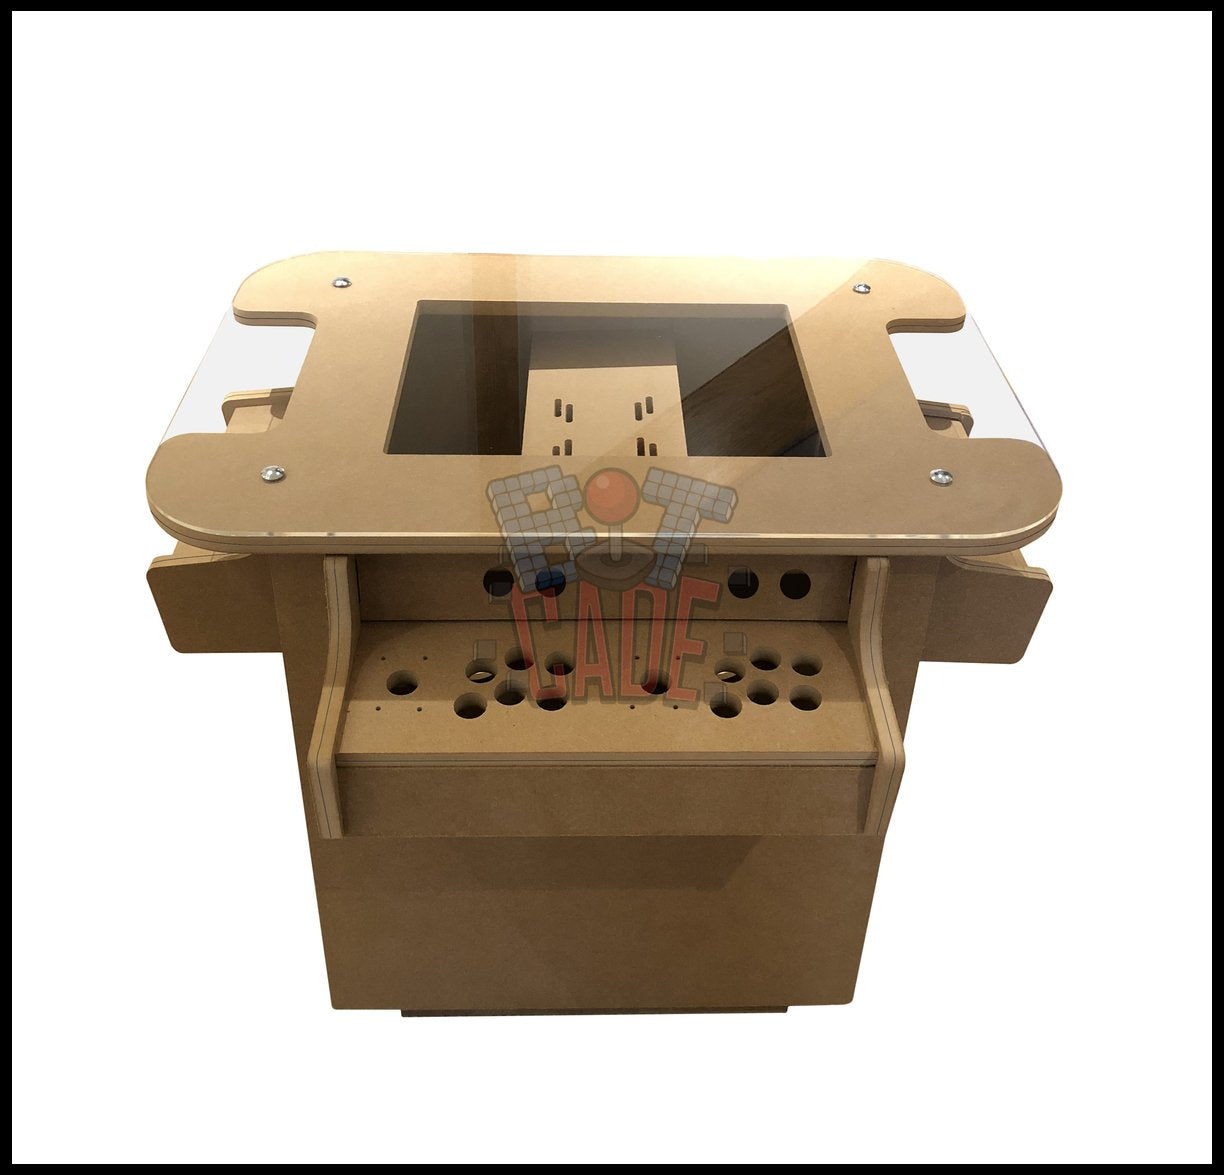 Bitcade - 4 Player Cocktail Table Arcade Machine Kit